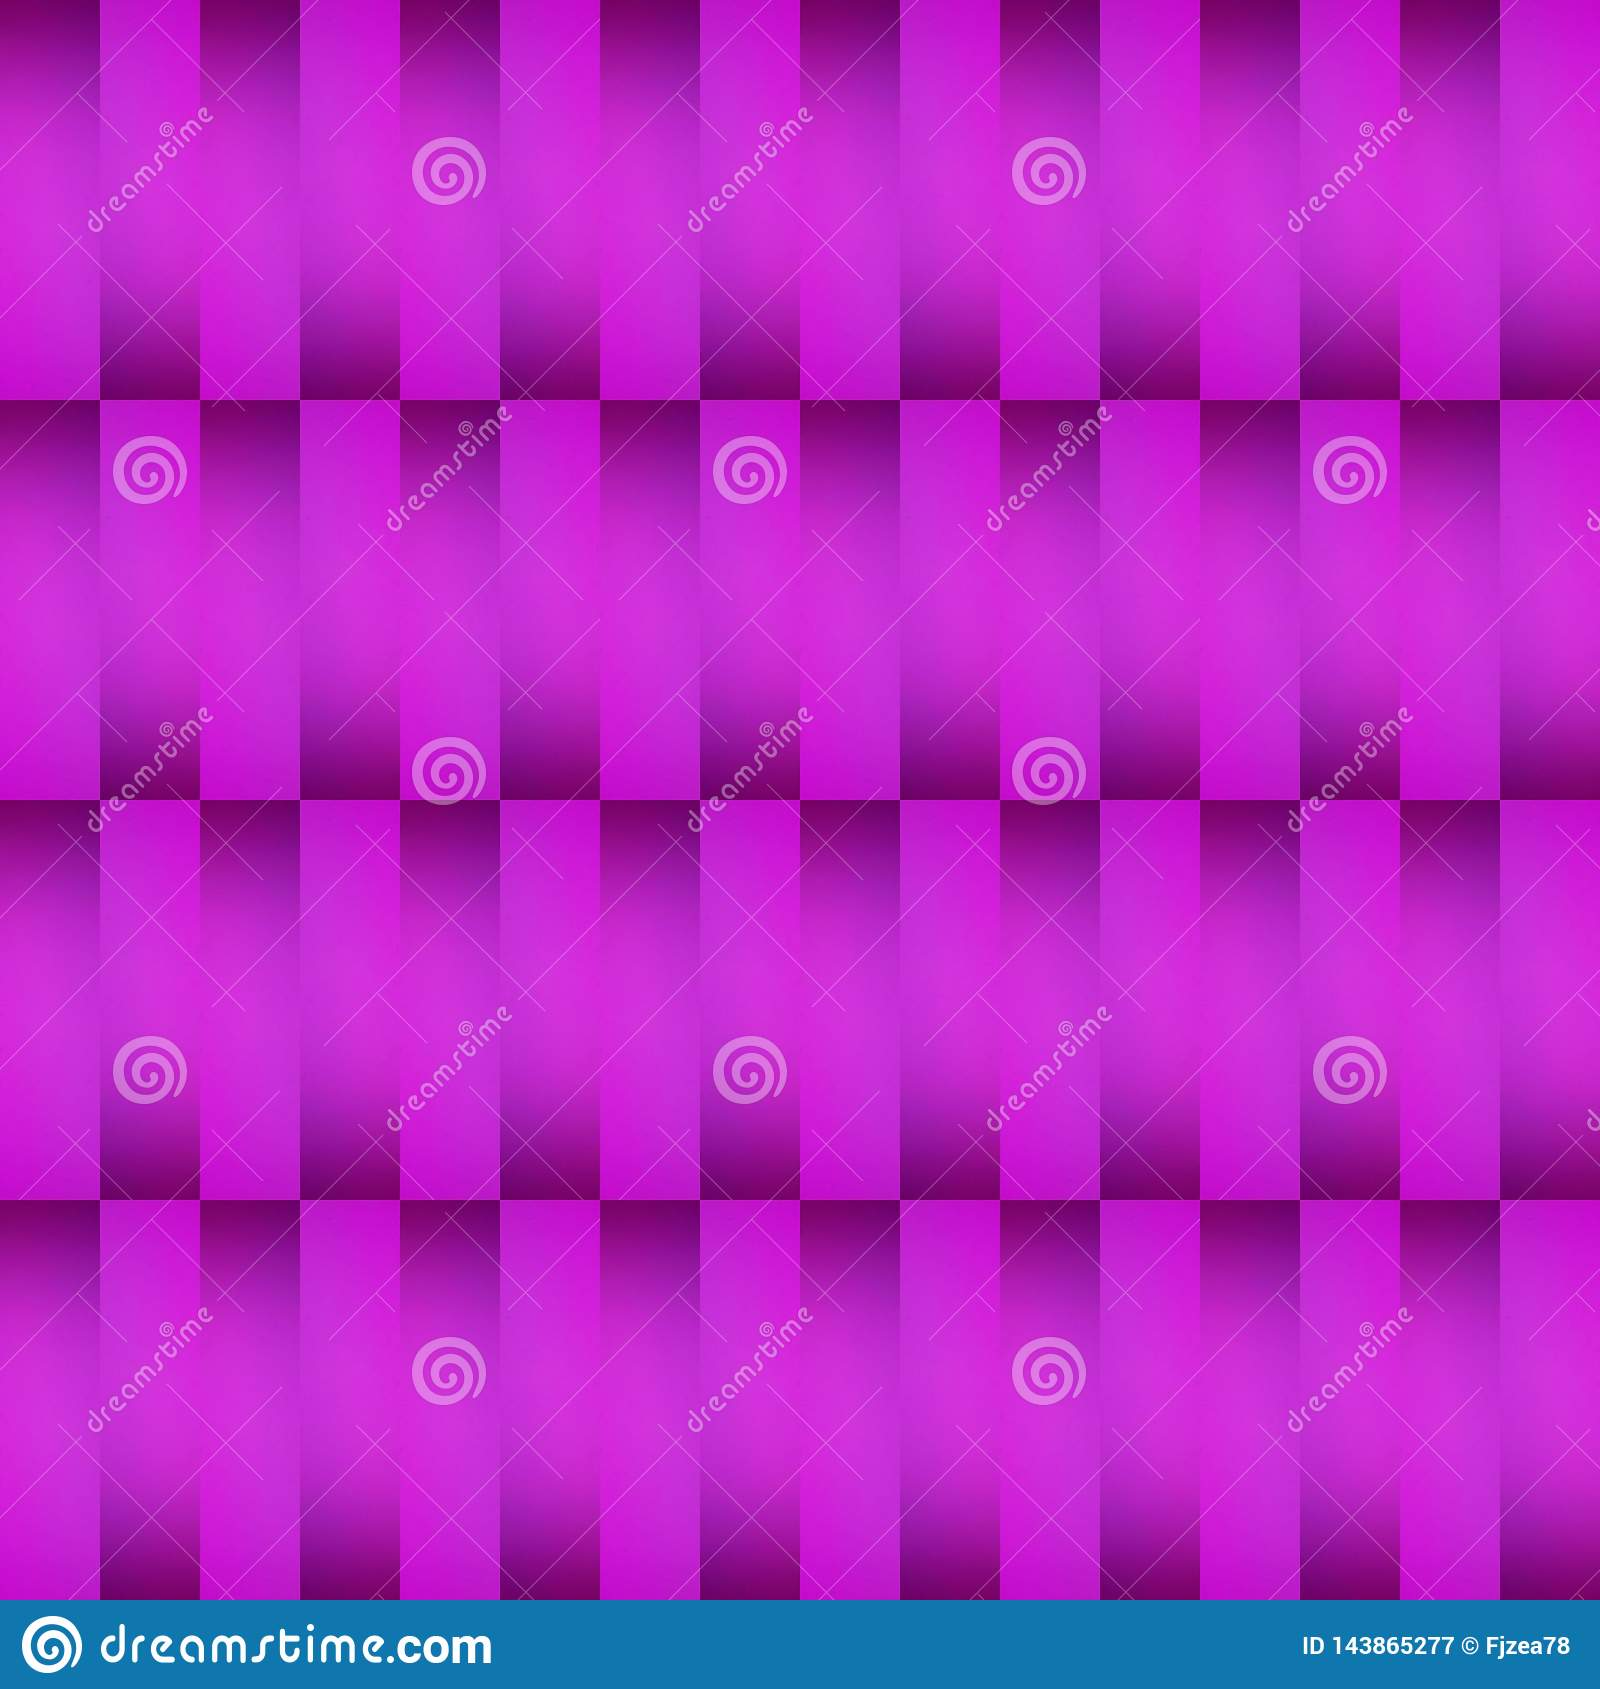 abstract design of collage from an opaque glass image with indirect light in pink and purple colors, background and texture